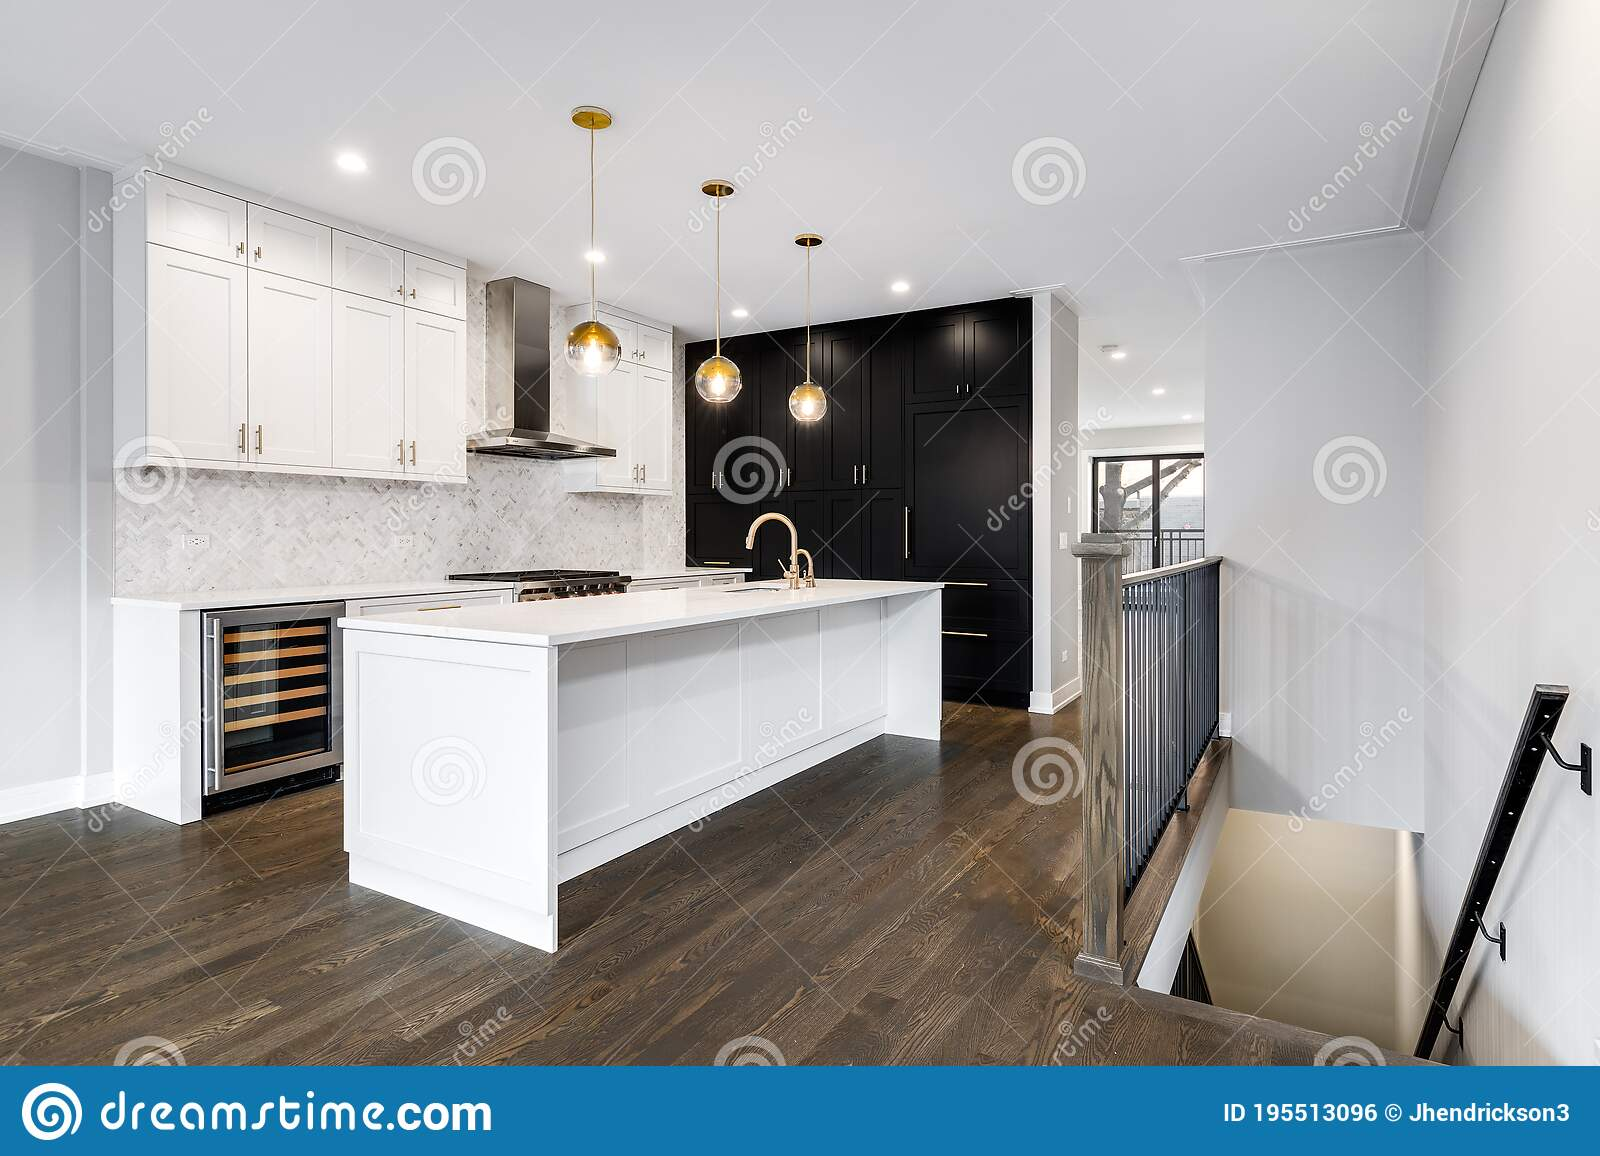 A Modern Luxurious Kitchen With White And Black Cabinets Editorial Photo Image Of Custom Counter 195513096